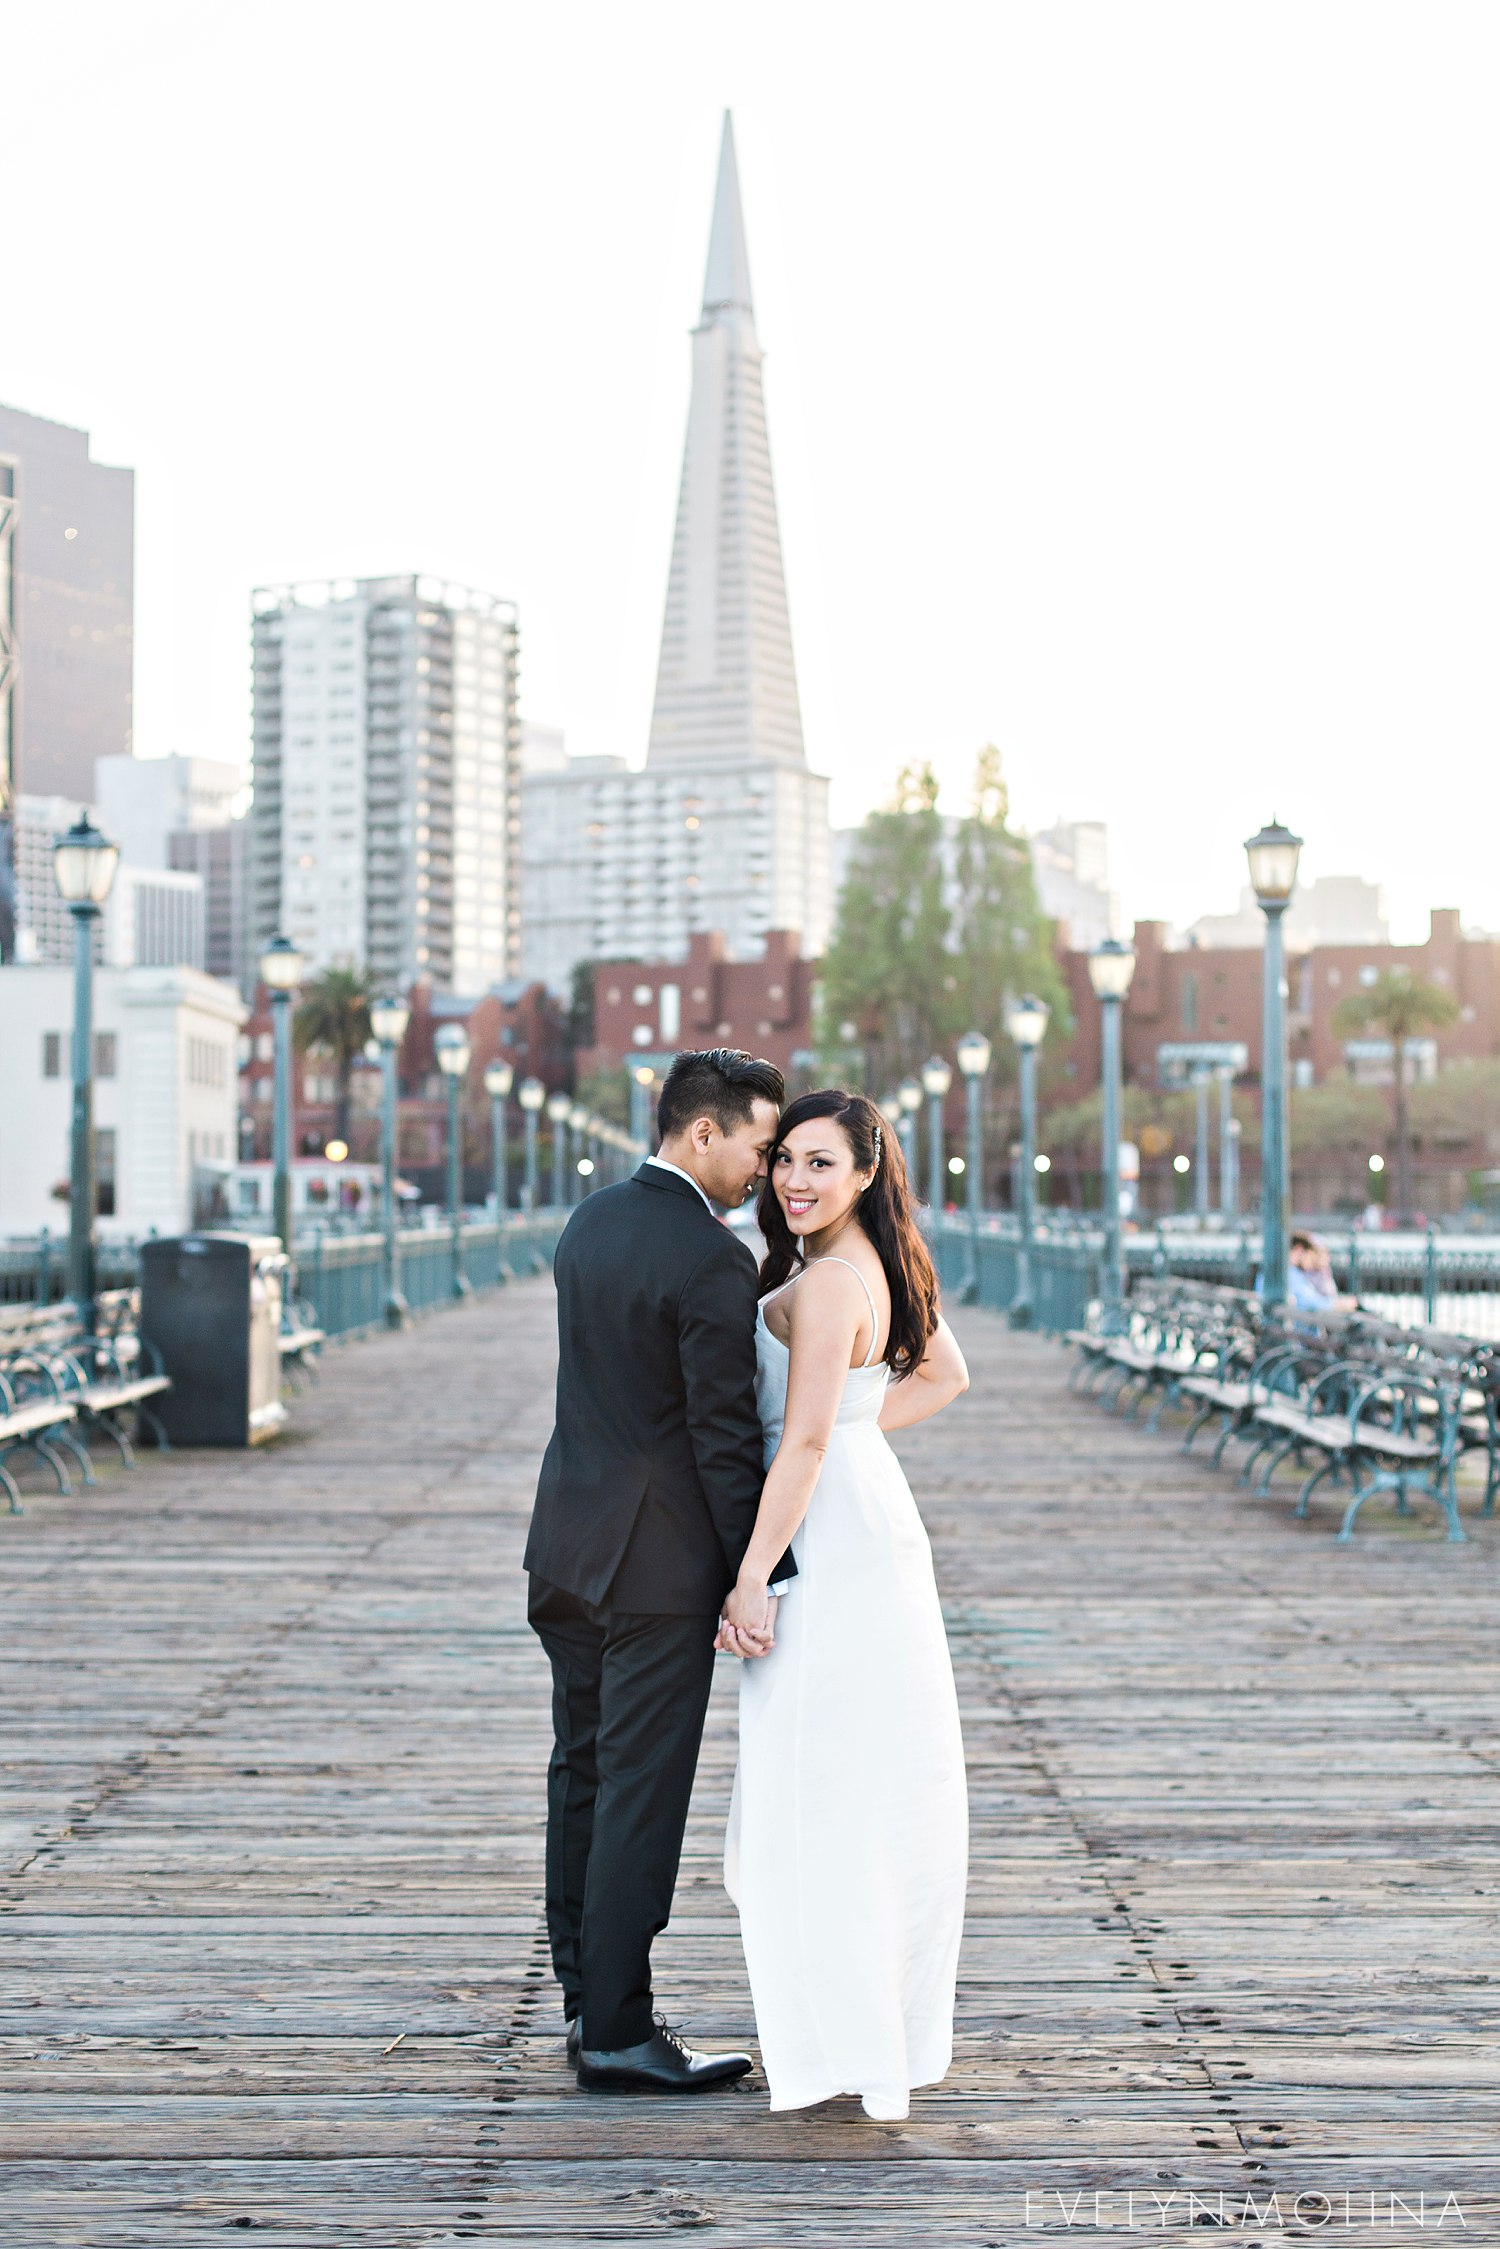 Pier 7 San Francisco Engagement Session - Lien and Phil_031.jpg